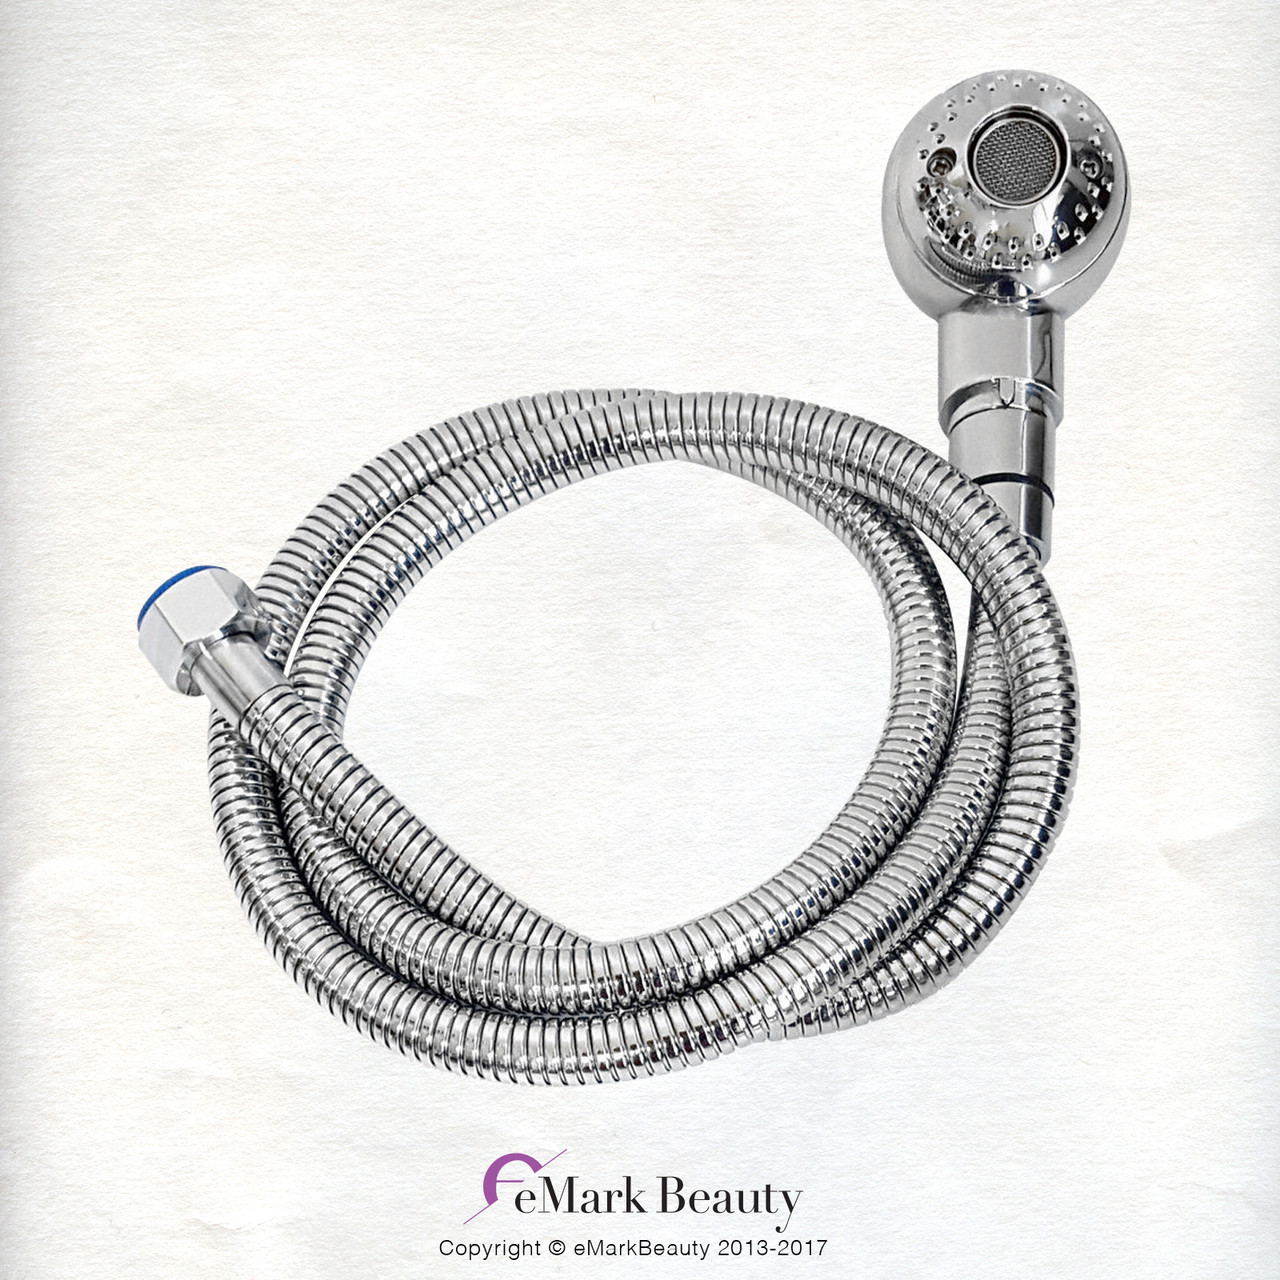 Plumbing Parts Kit Diverter Spray Hose Chrome Faucet for use with Shampoo Bowls with Small Gel Neck Rest TLC-1164DHG